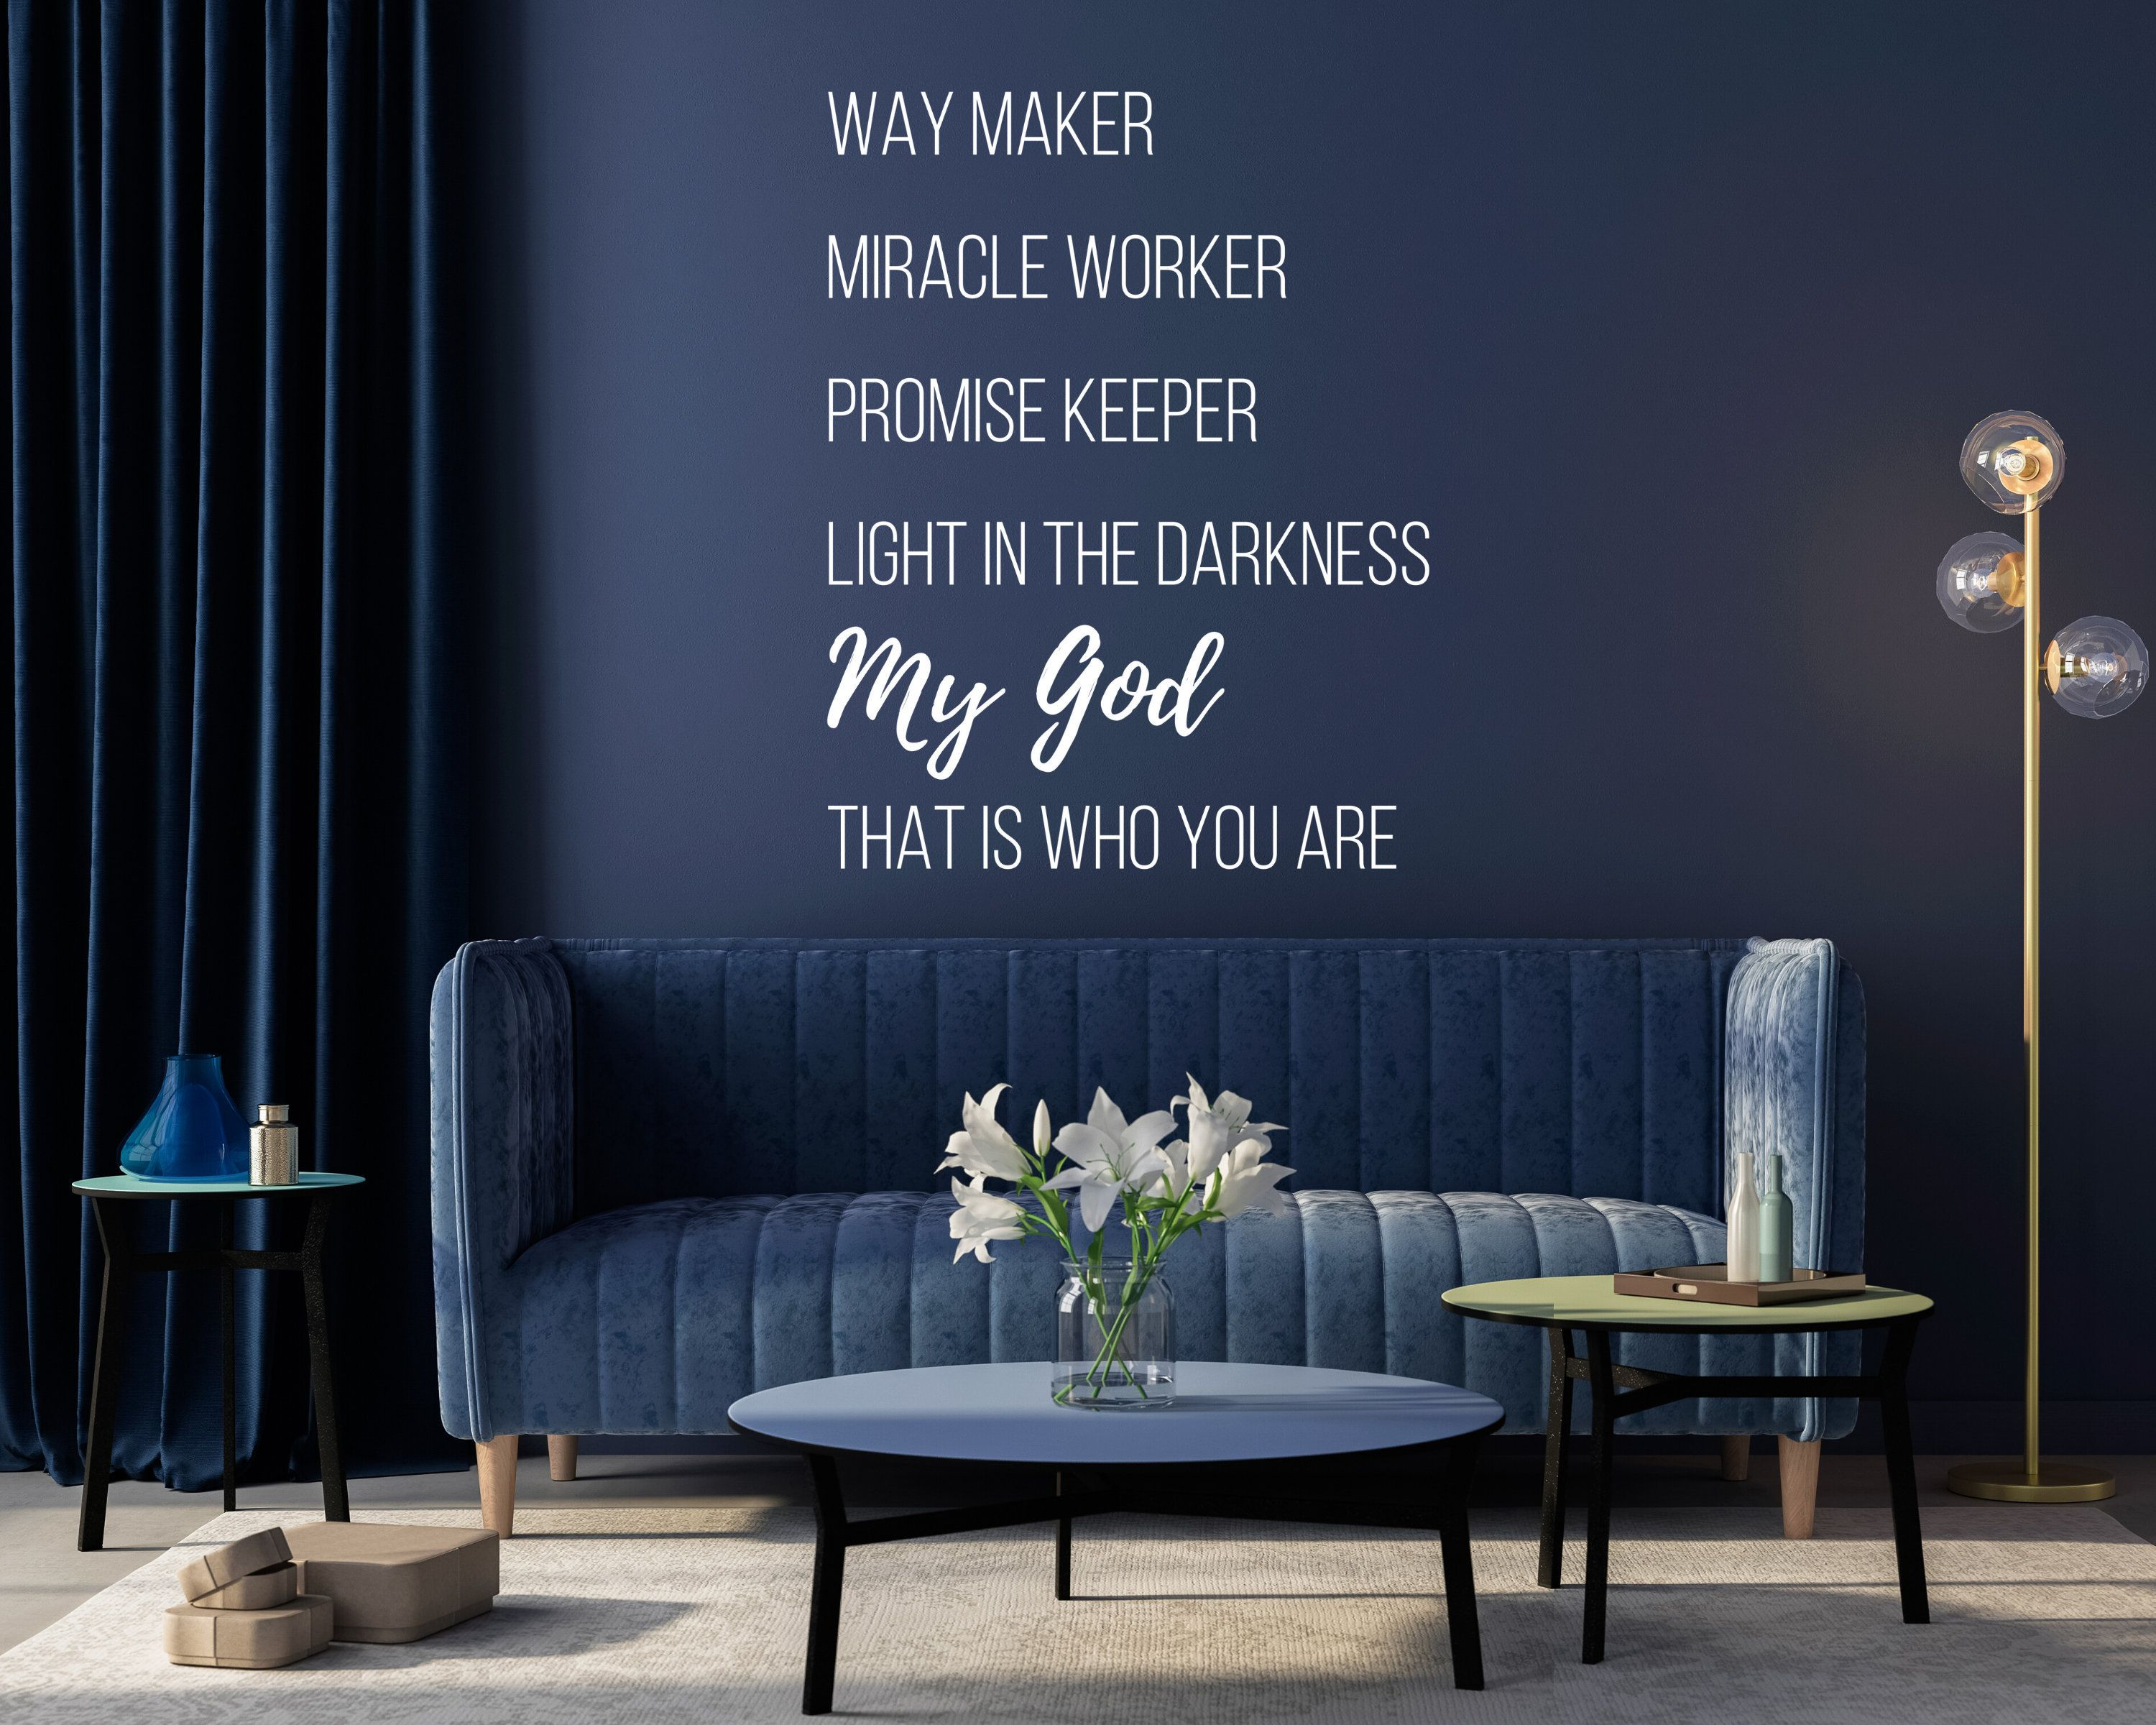 Way Maker Miracle Worker Promise Keeper Light In The Darkness Lyrics Vinyl Wall Decal Stylish Home Decor Vinyl Wall Decals Promise Keepers